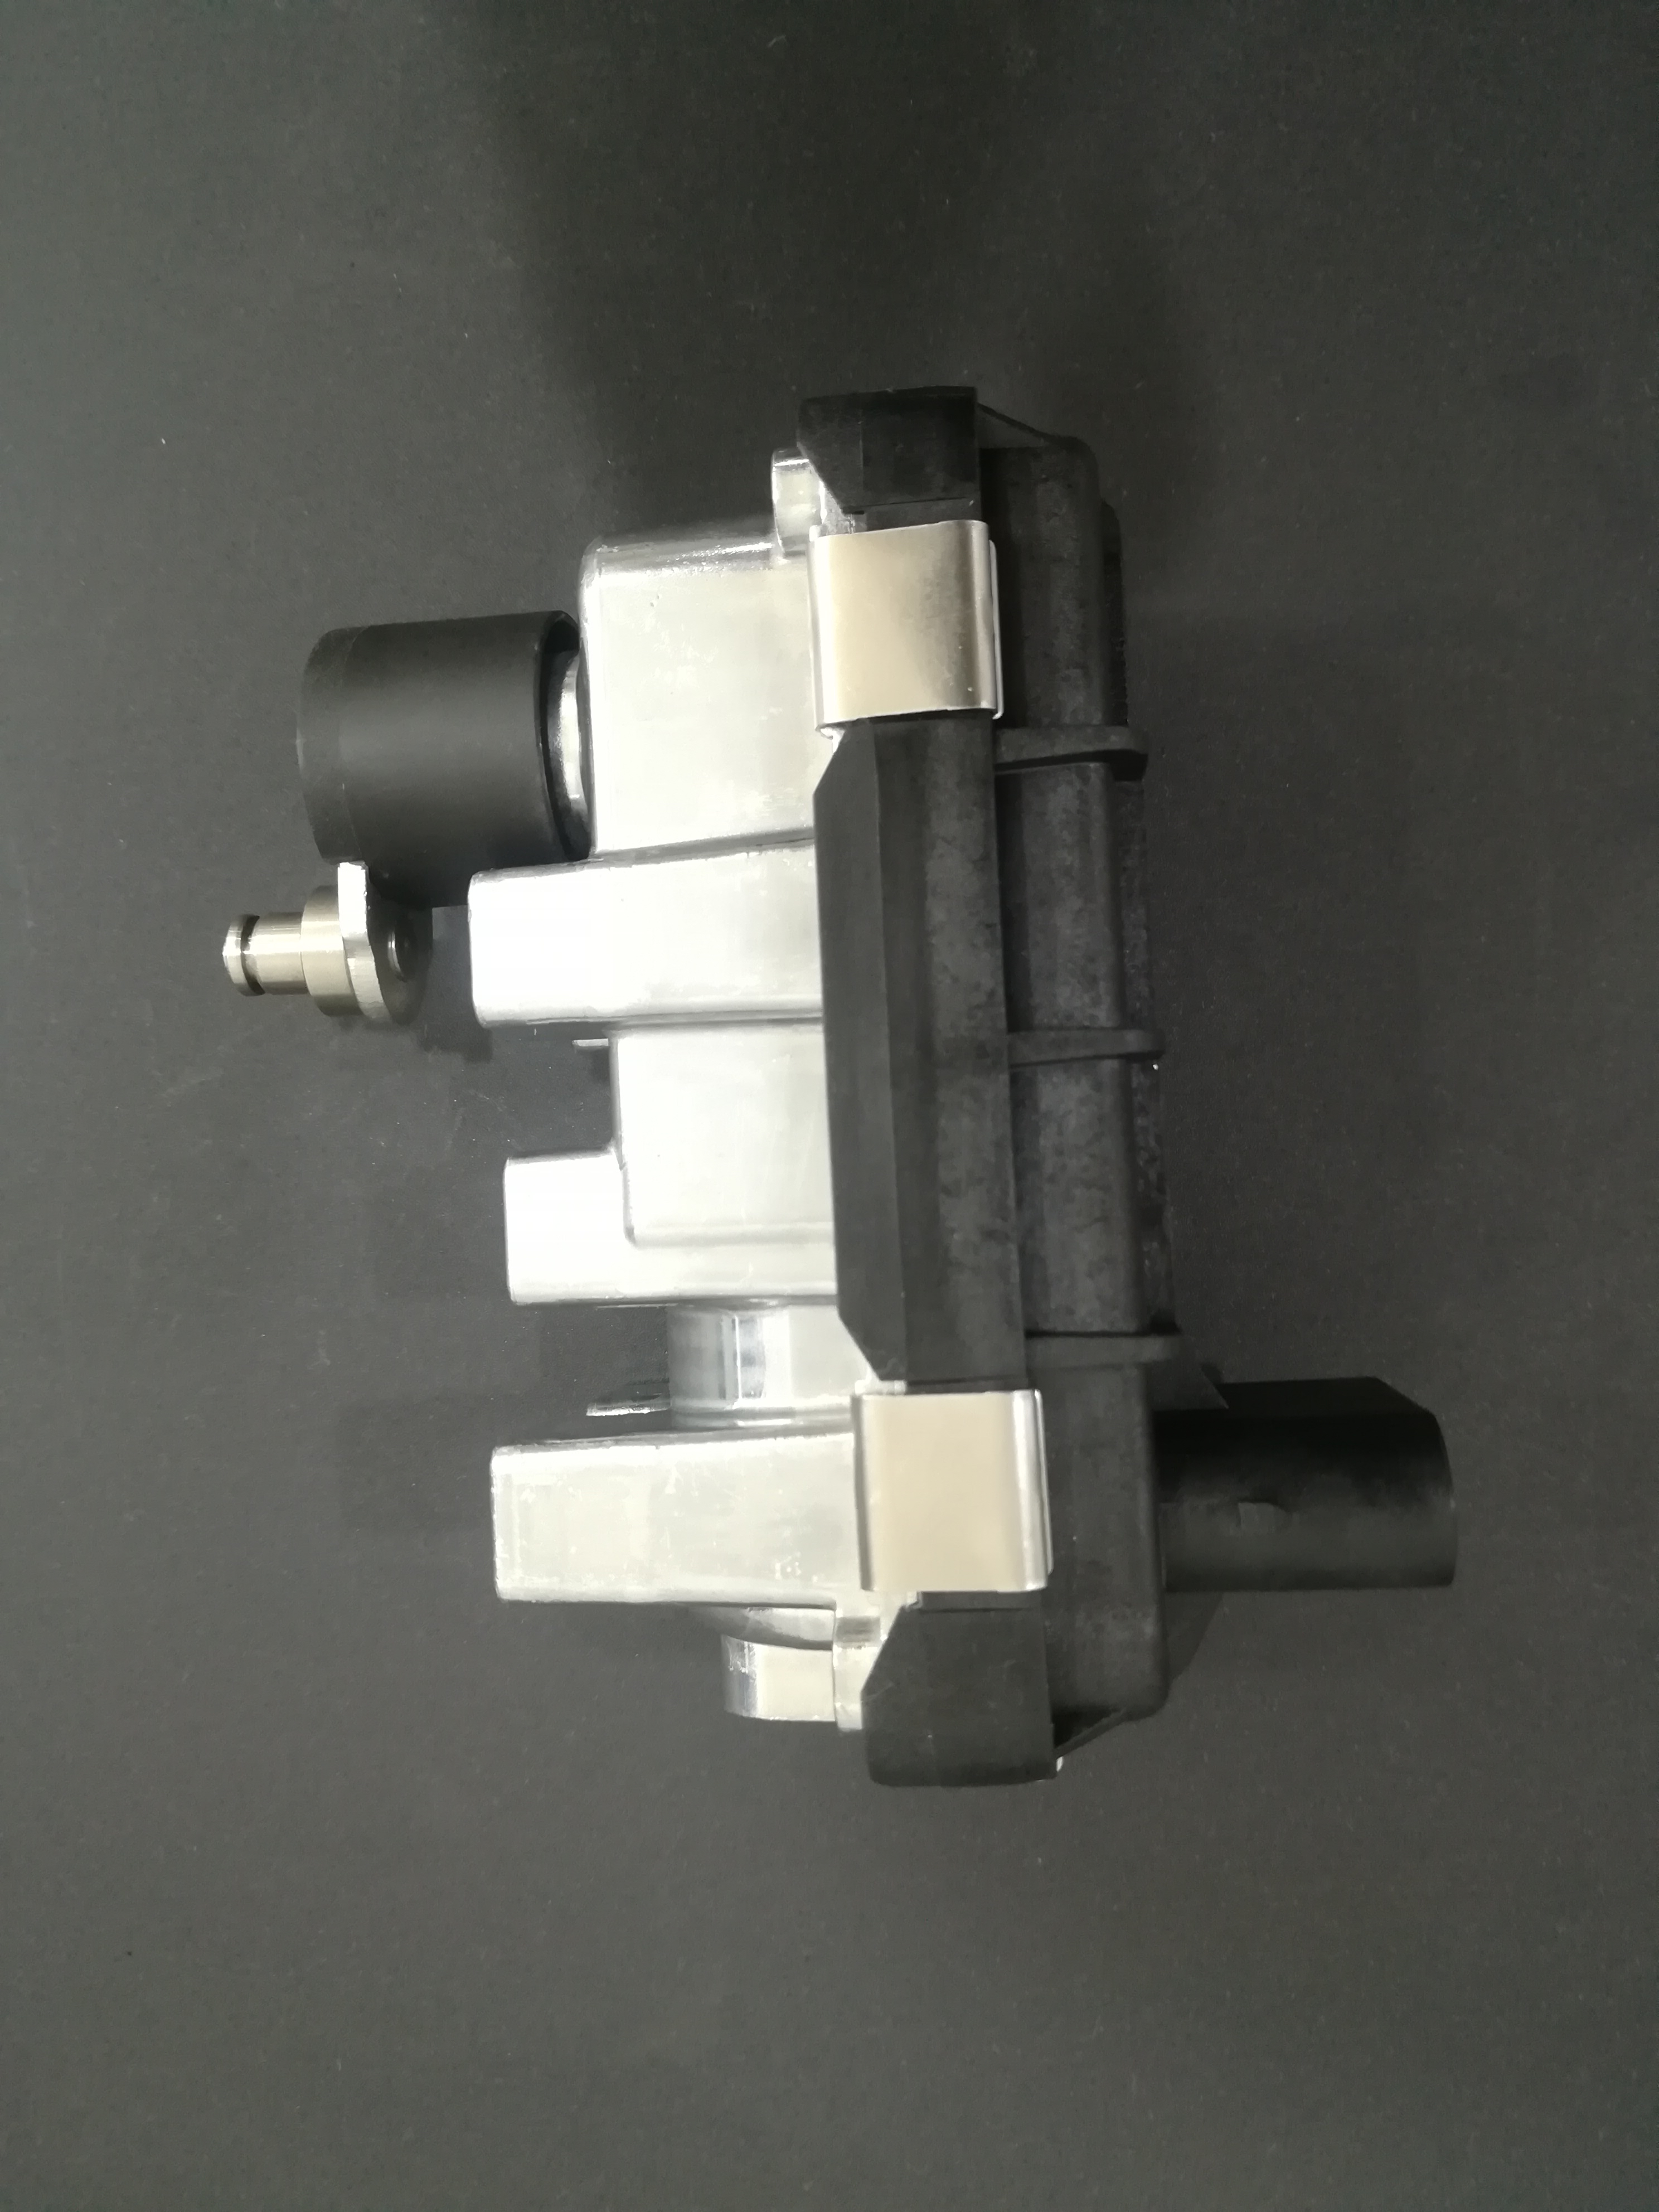 762965 762965-2 turbo charger actuator 762965-3 electronic actuator valve 762965-7 762965-8